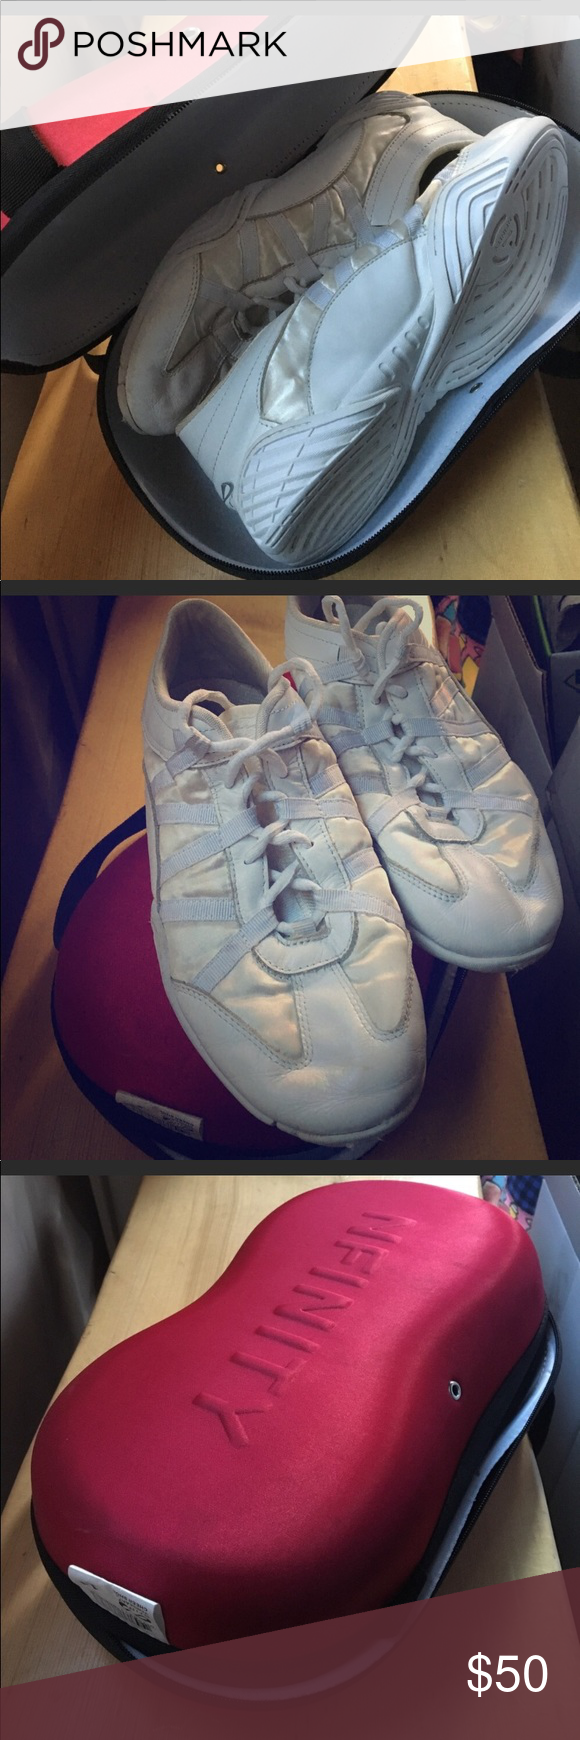 Nfinity Cheer Shoes Nfinity Evolution Shoes Size 11 Brand New Never Worn Box Included Has A Couple Spots On It And Is L Nfinity Cheer Shoes Cheer Shoes Shoes